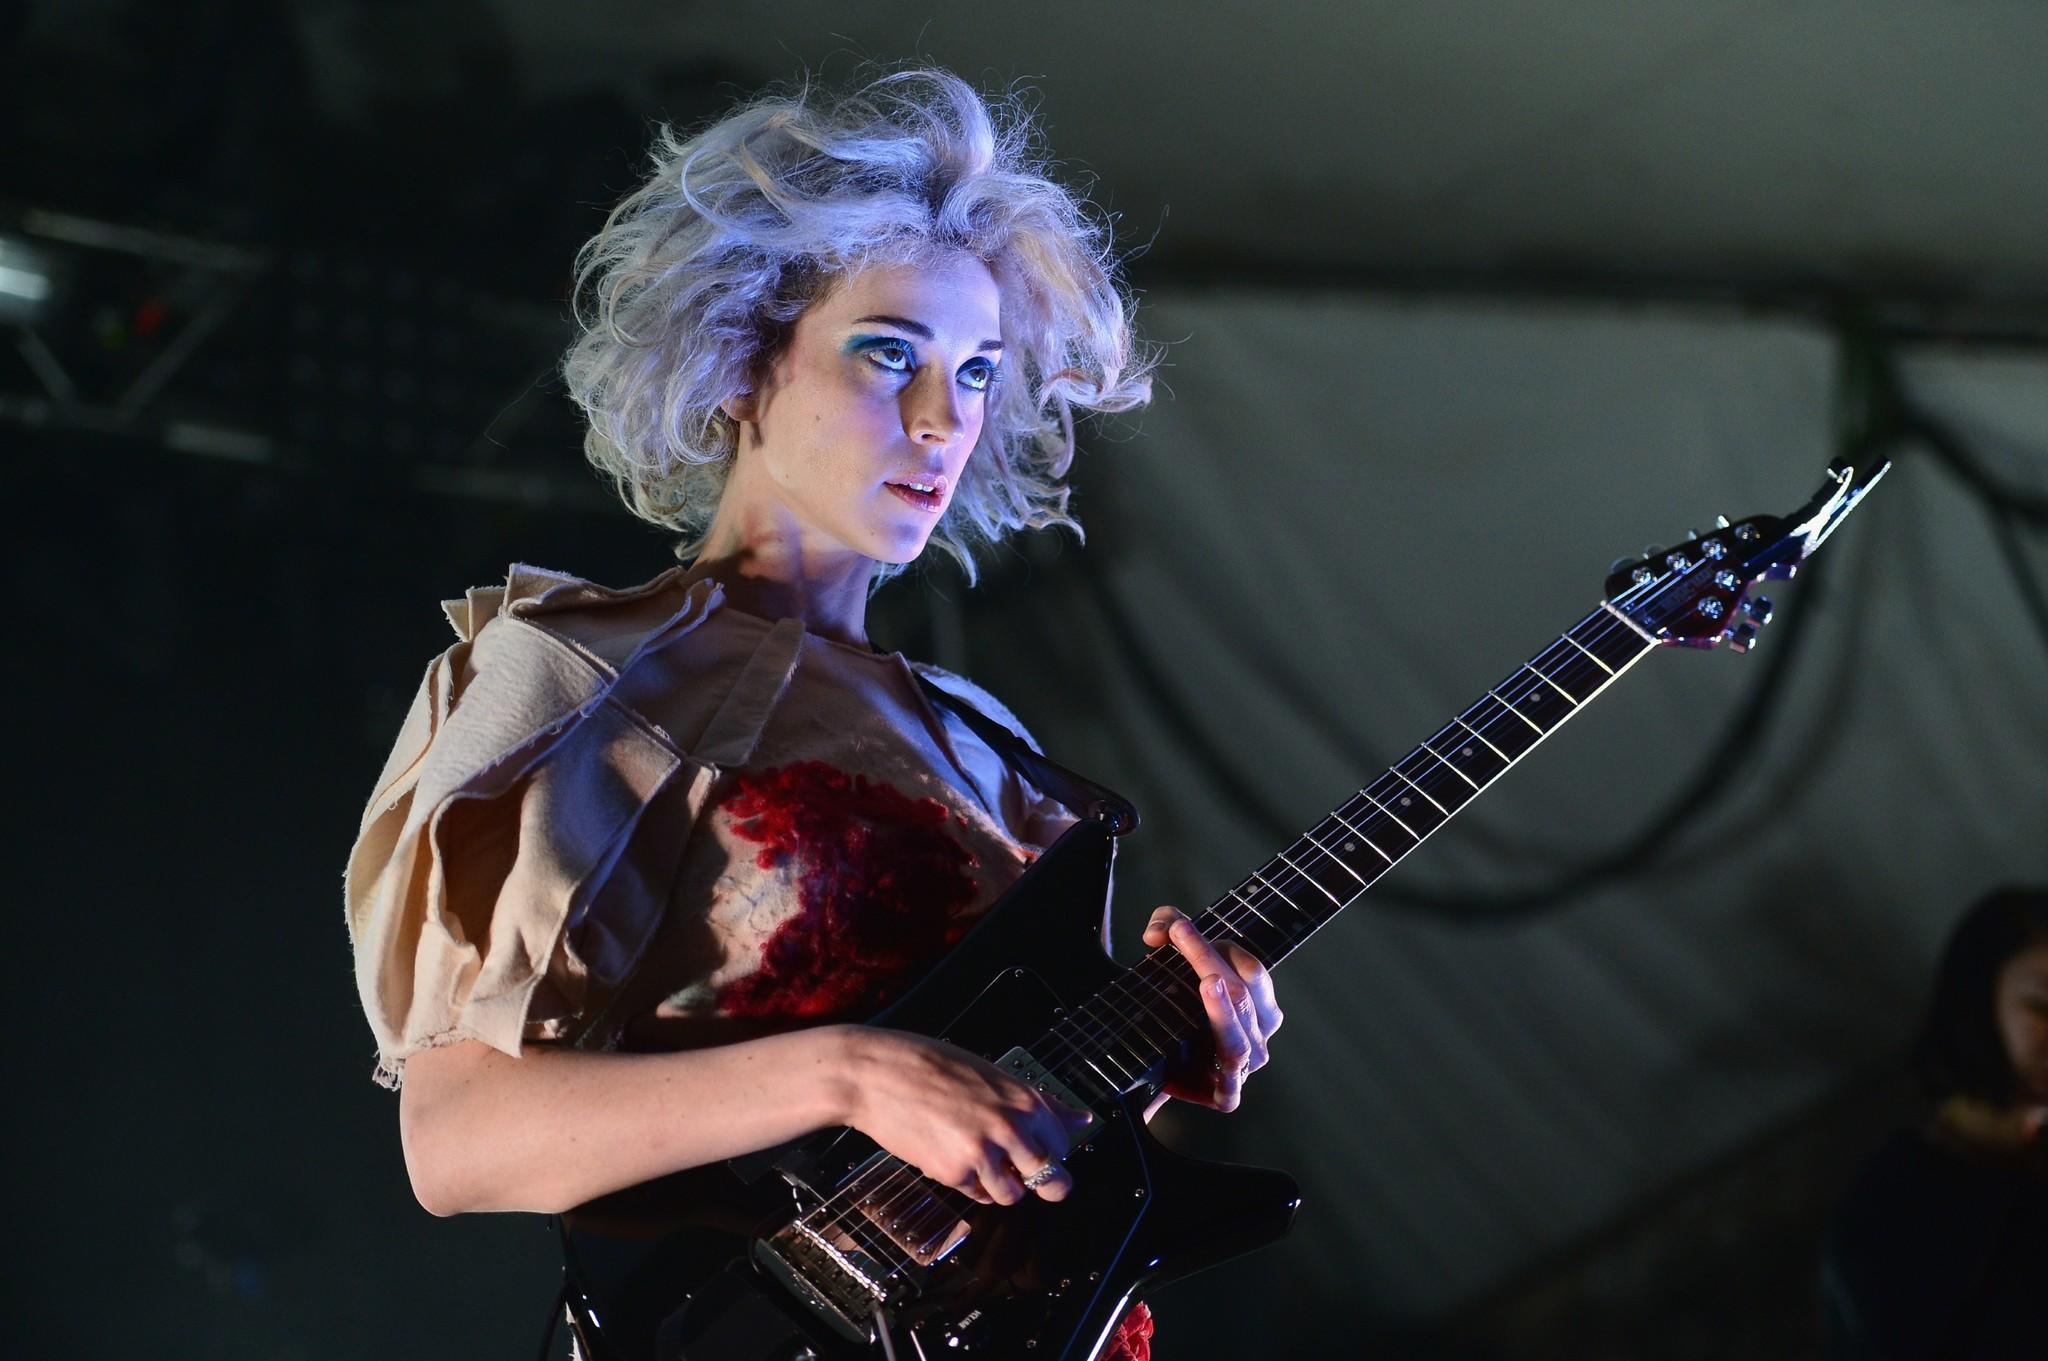 St. Vincent performs during the NPR 2014 SXSW Music, Film   Interactive show.